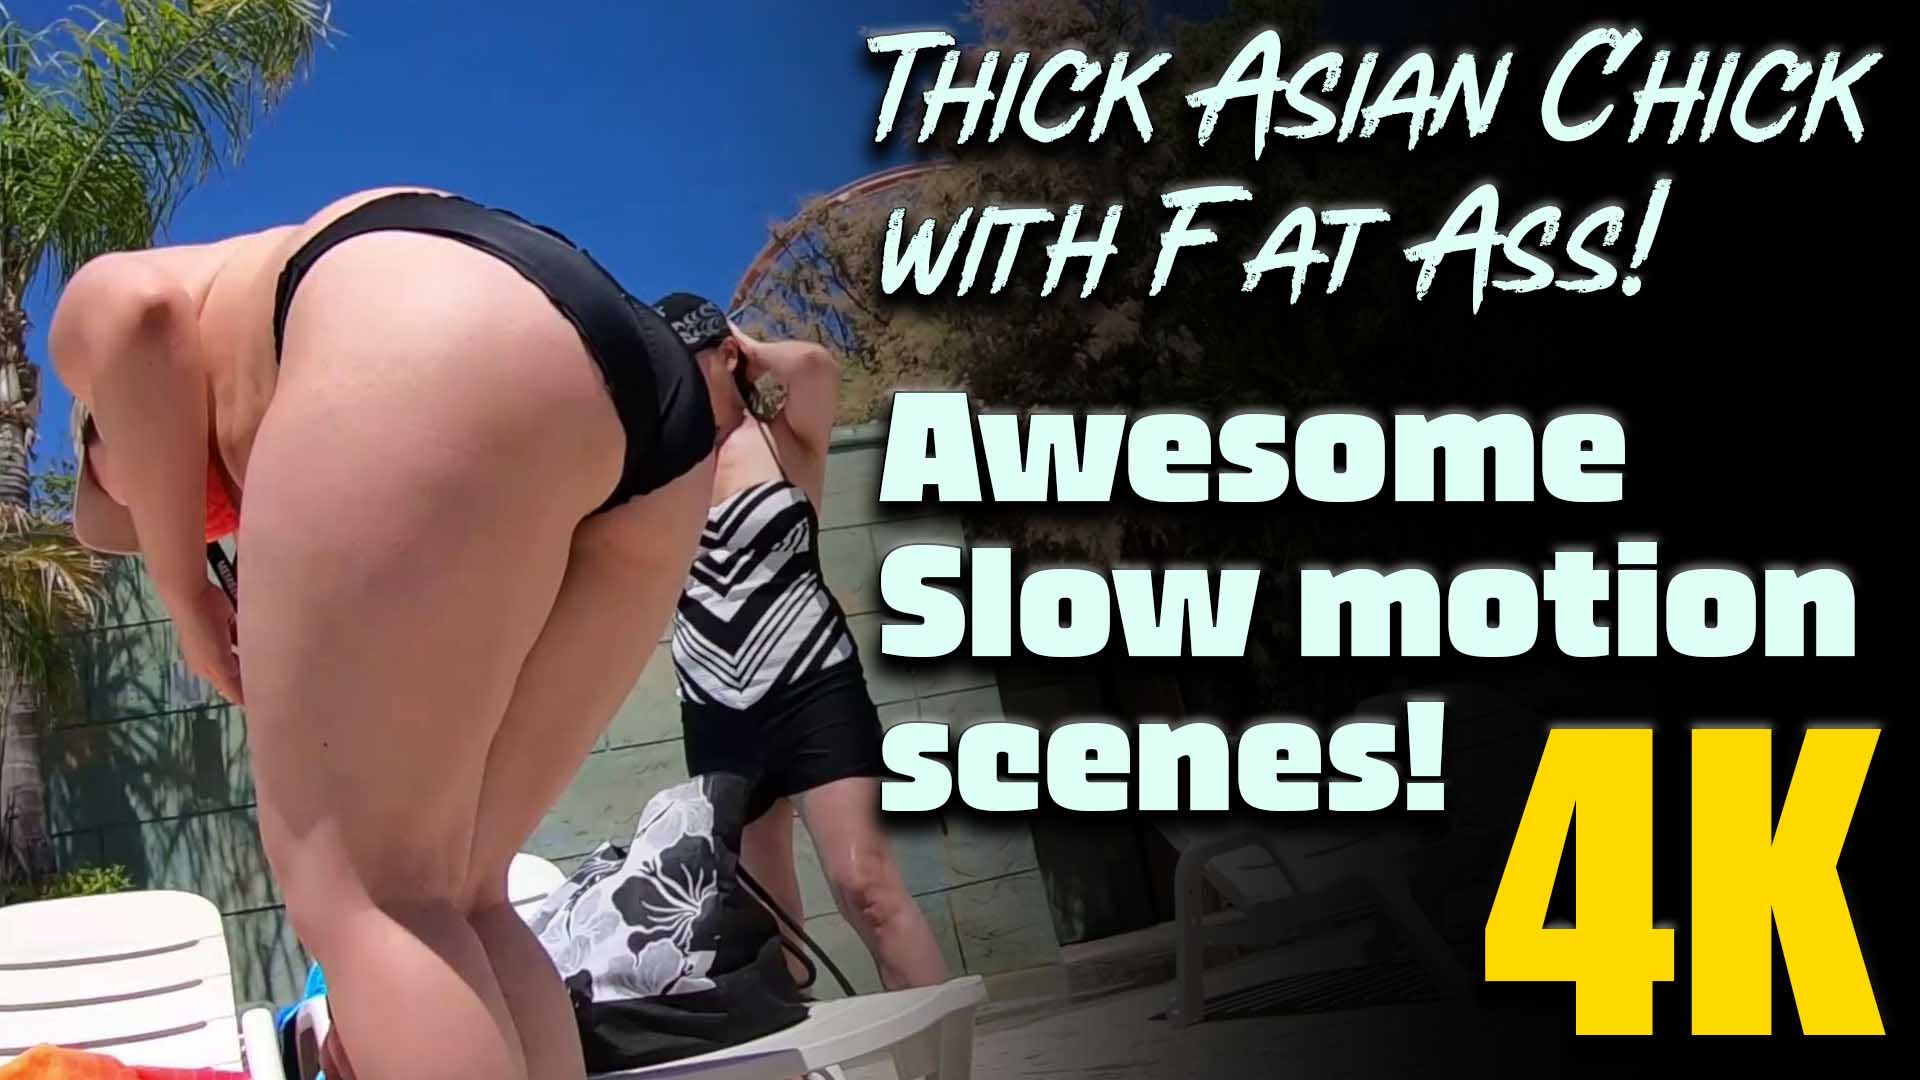 Thick-Asian-Chick-with-Fat-Ass